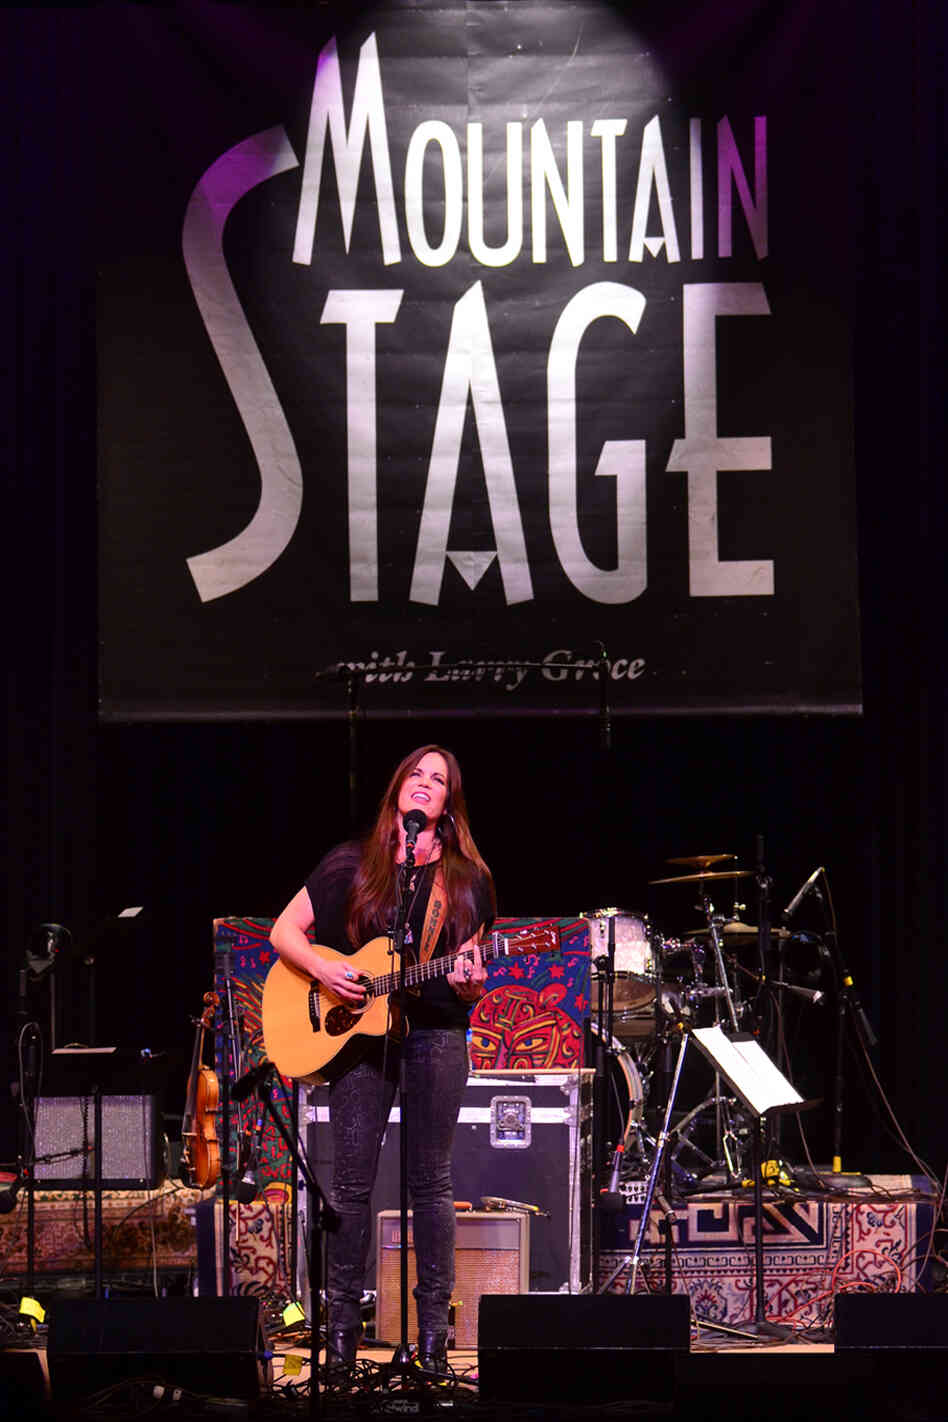 Bonnie Bishop performs live on Mountain Stage.